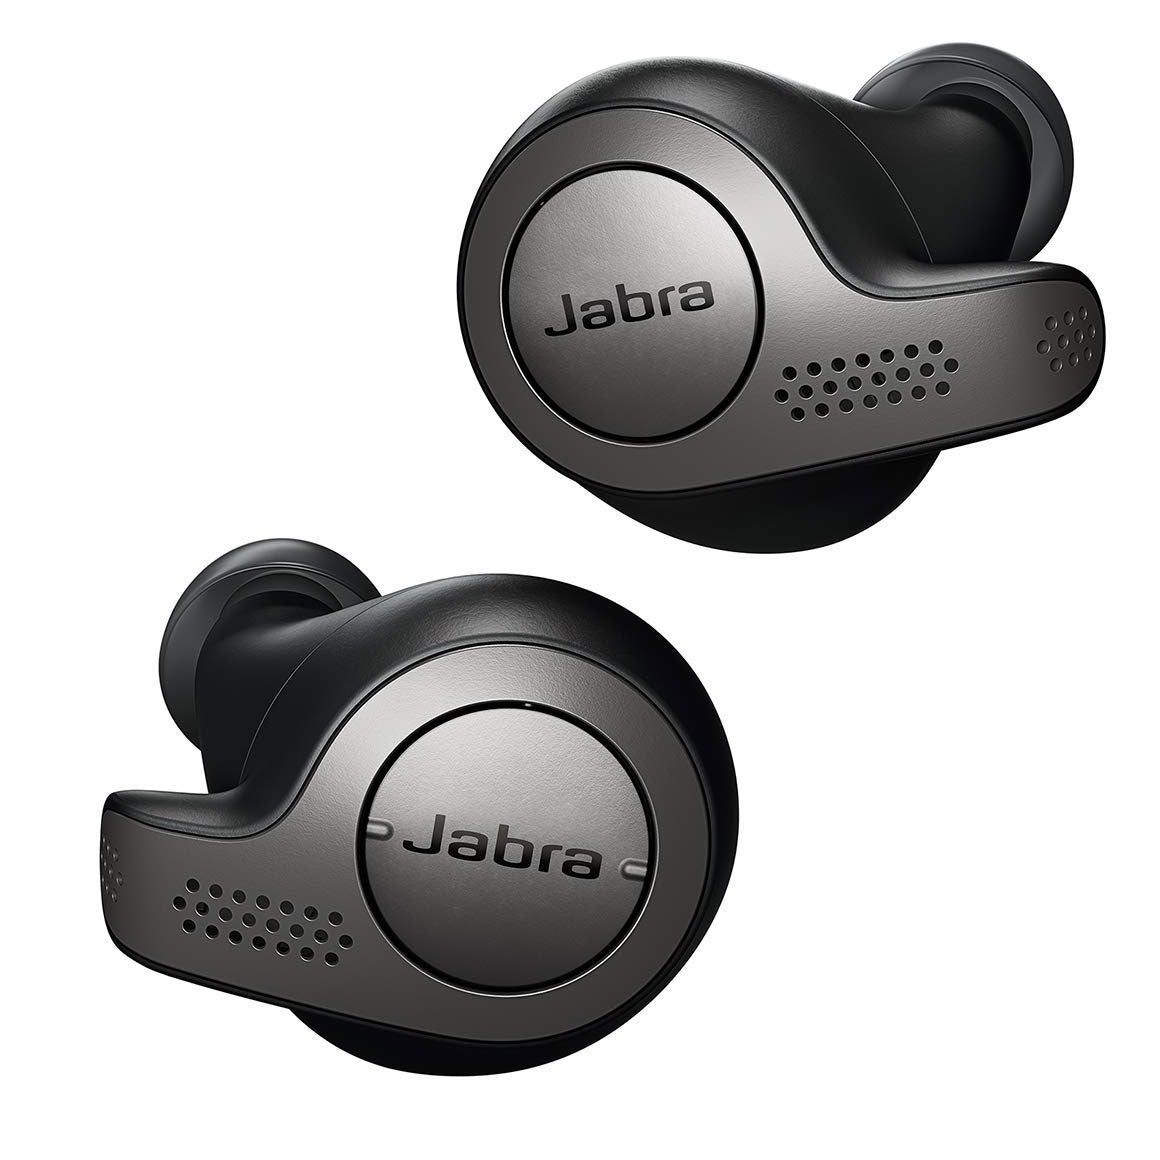 Jabra - Elite 65t vs competitors